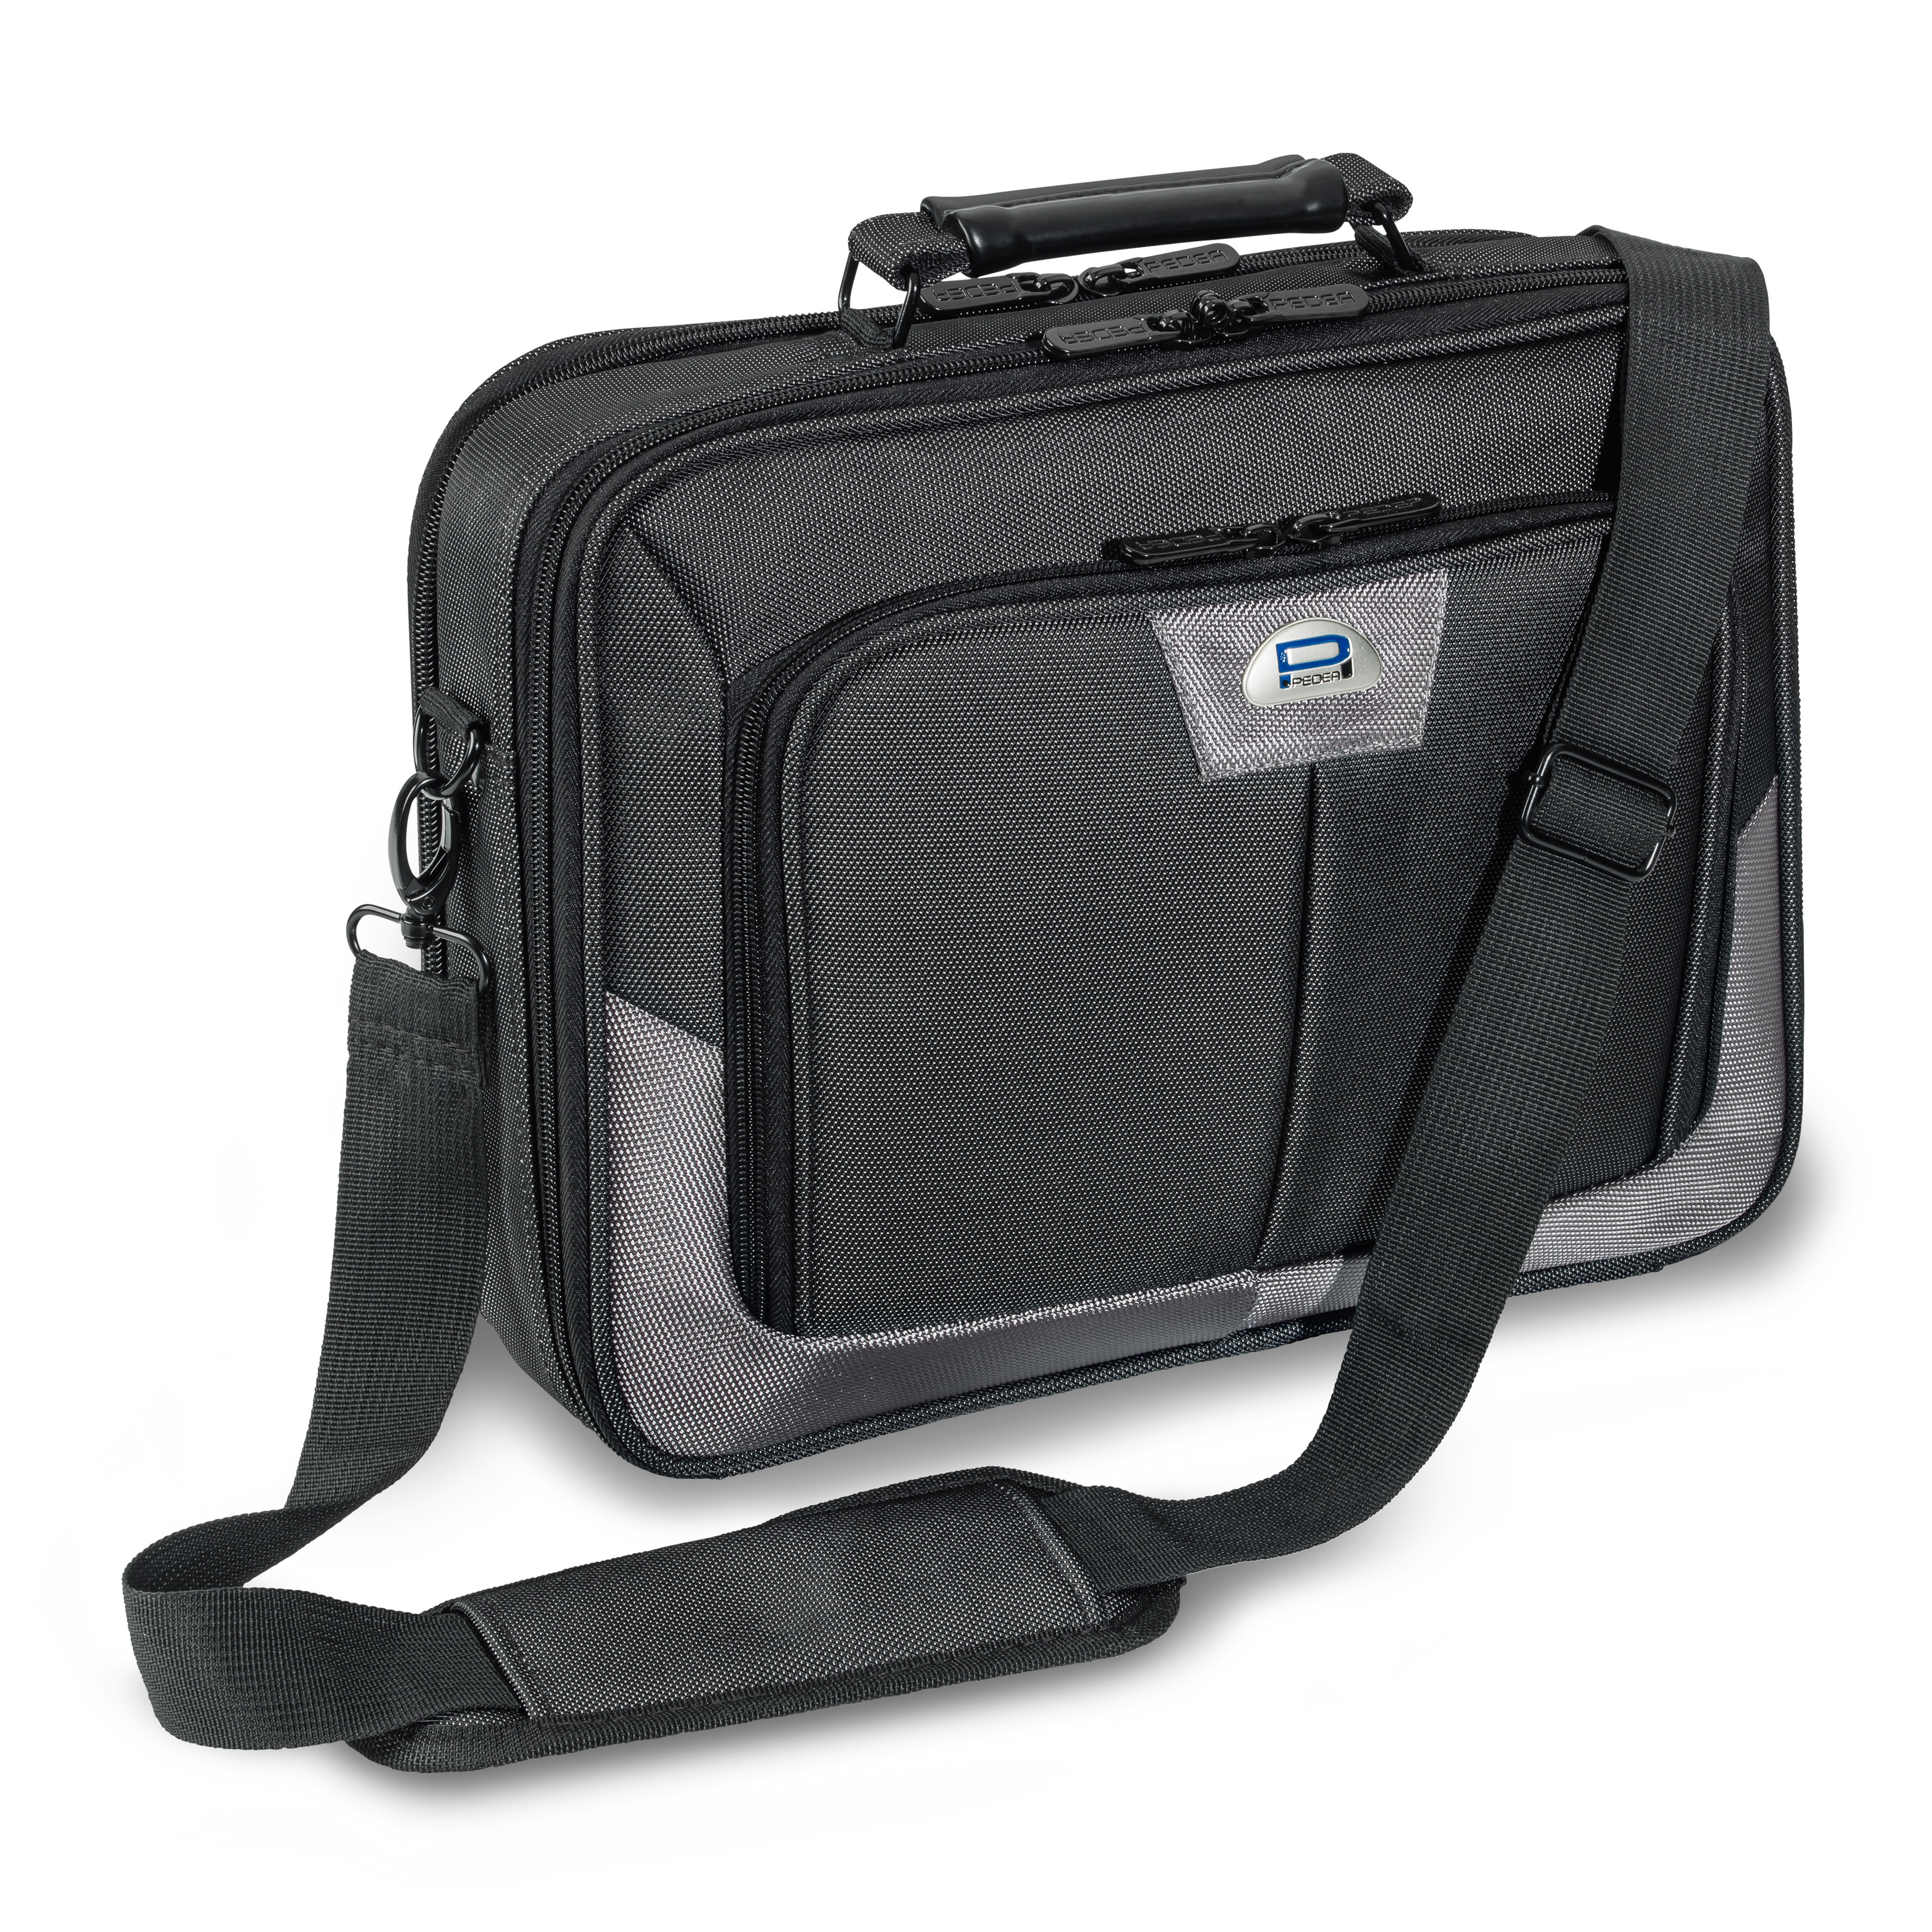 PEDEA Premium Clamshell Laptop Bag Case 13.3 inch